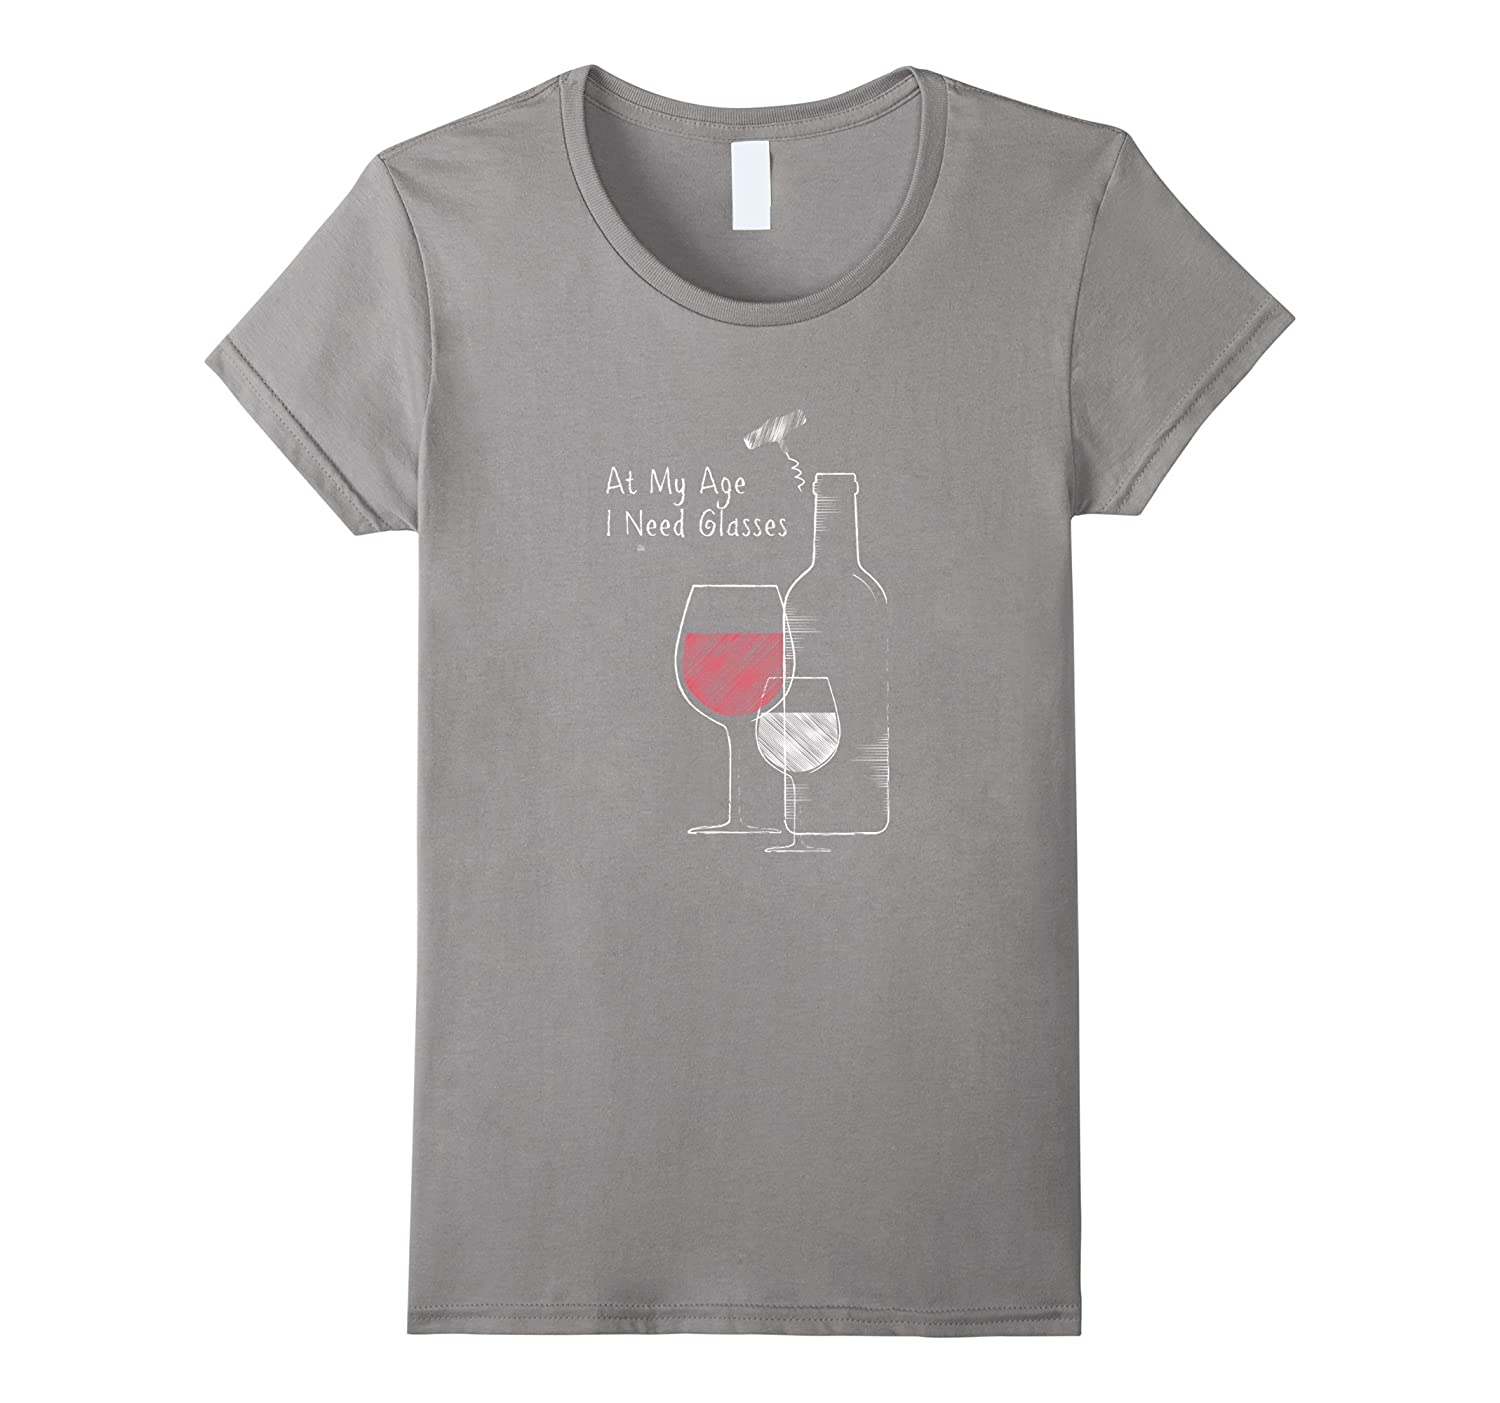 At My Age I Need Glasses Funny T-Shirt For Wine Lover